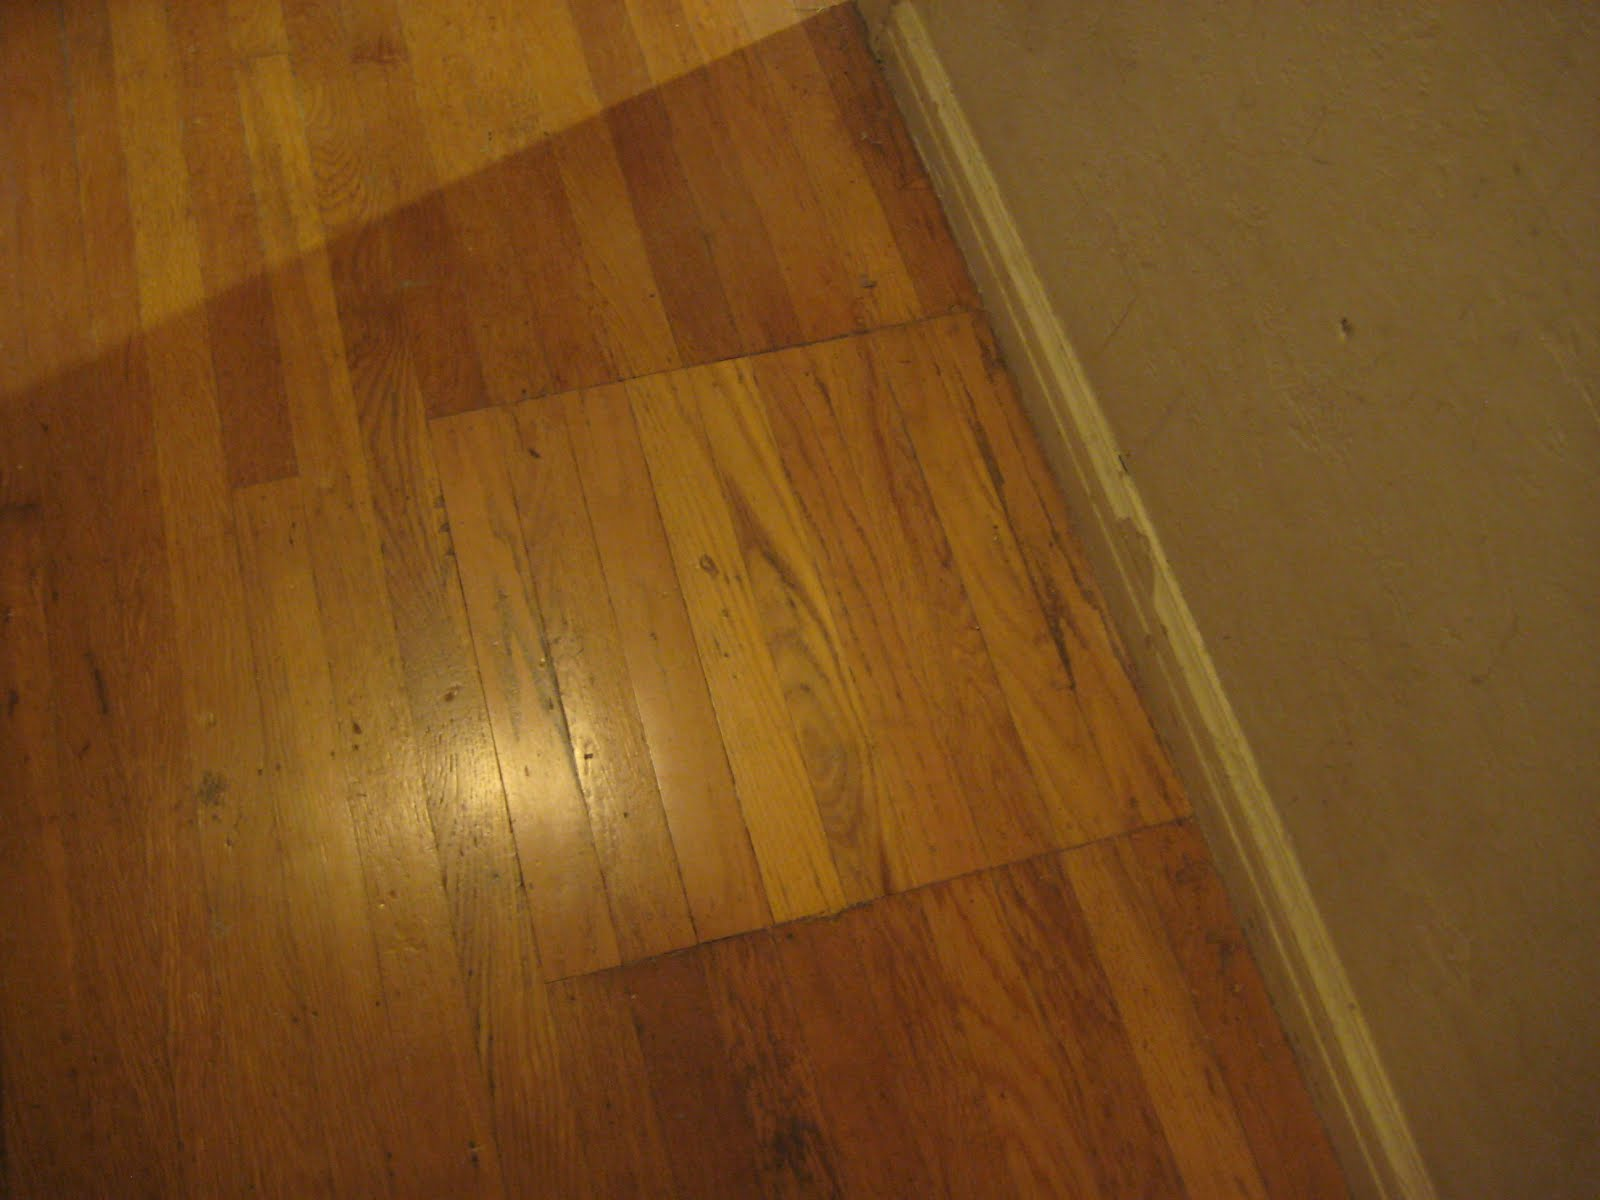 patching hardwood floorspicardy project | new bob vila